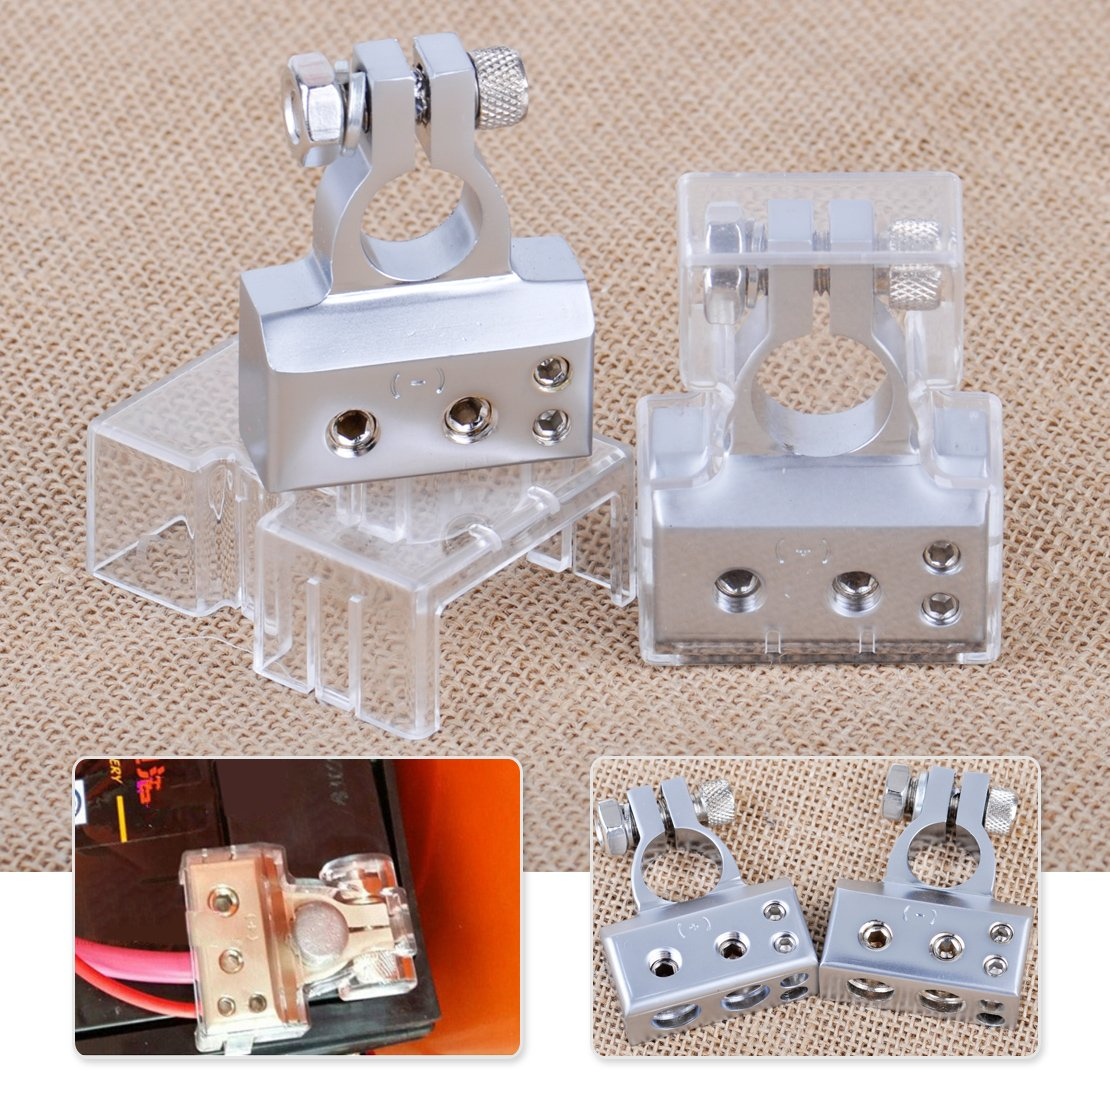 2pcs Silver zinc alloy 2 4 8 Gauge AWG Positive & Negative 12V Car Battery Terminal Clamp Connector with Cover by VANVO